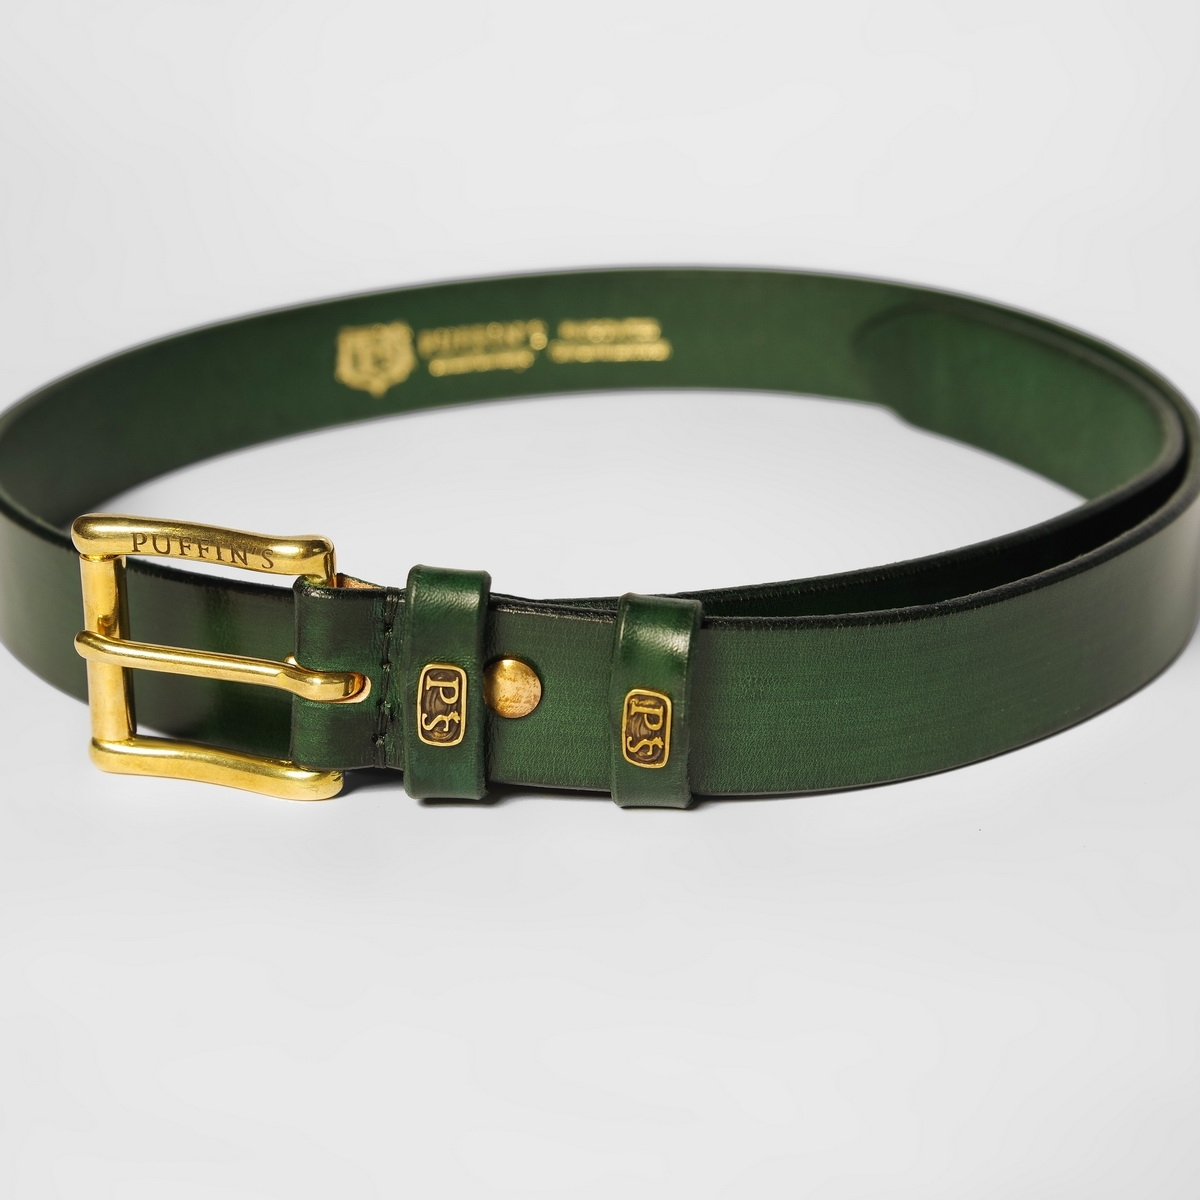 32mm traditional belt for jeans grassy green